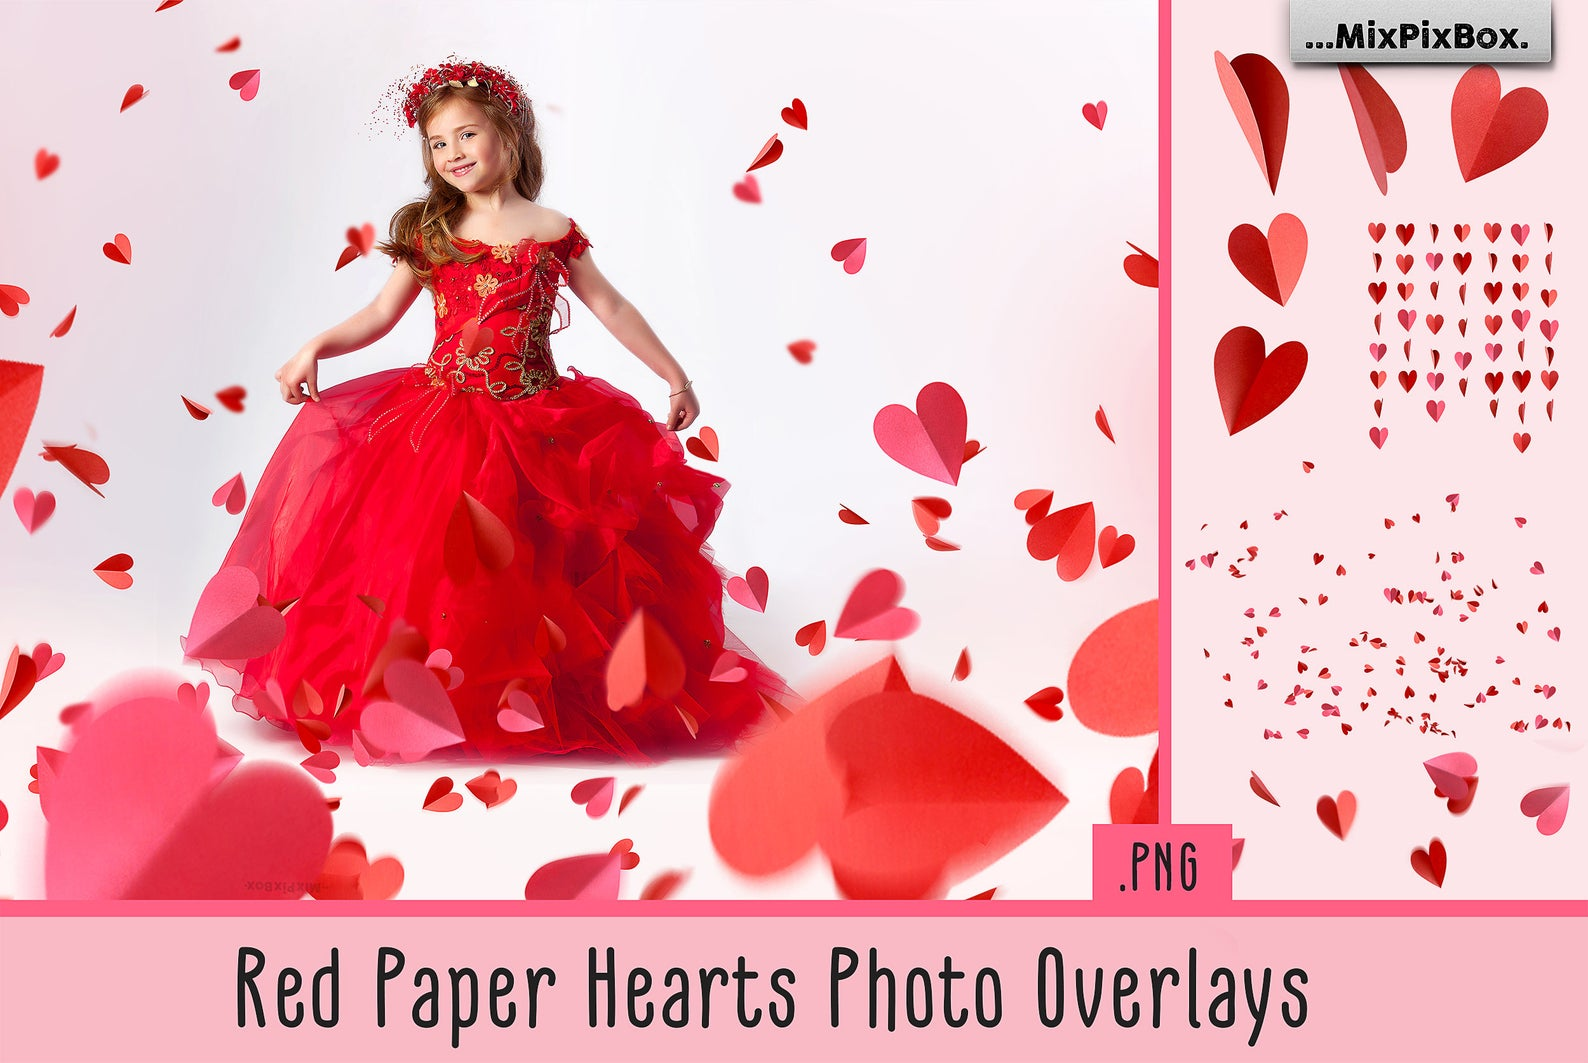 38 Heart Overlays: Red Paper Hearts Photoshop Add-ons - red paper hearts first image